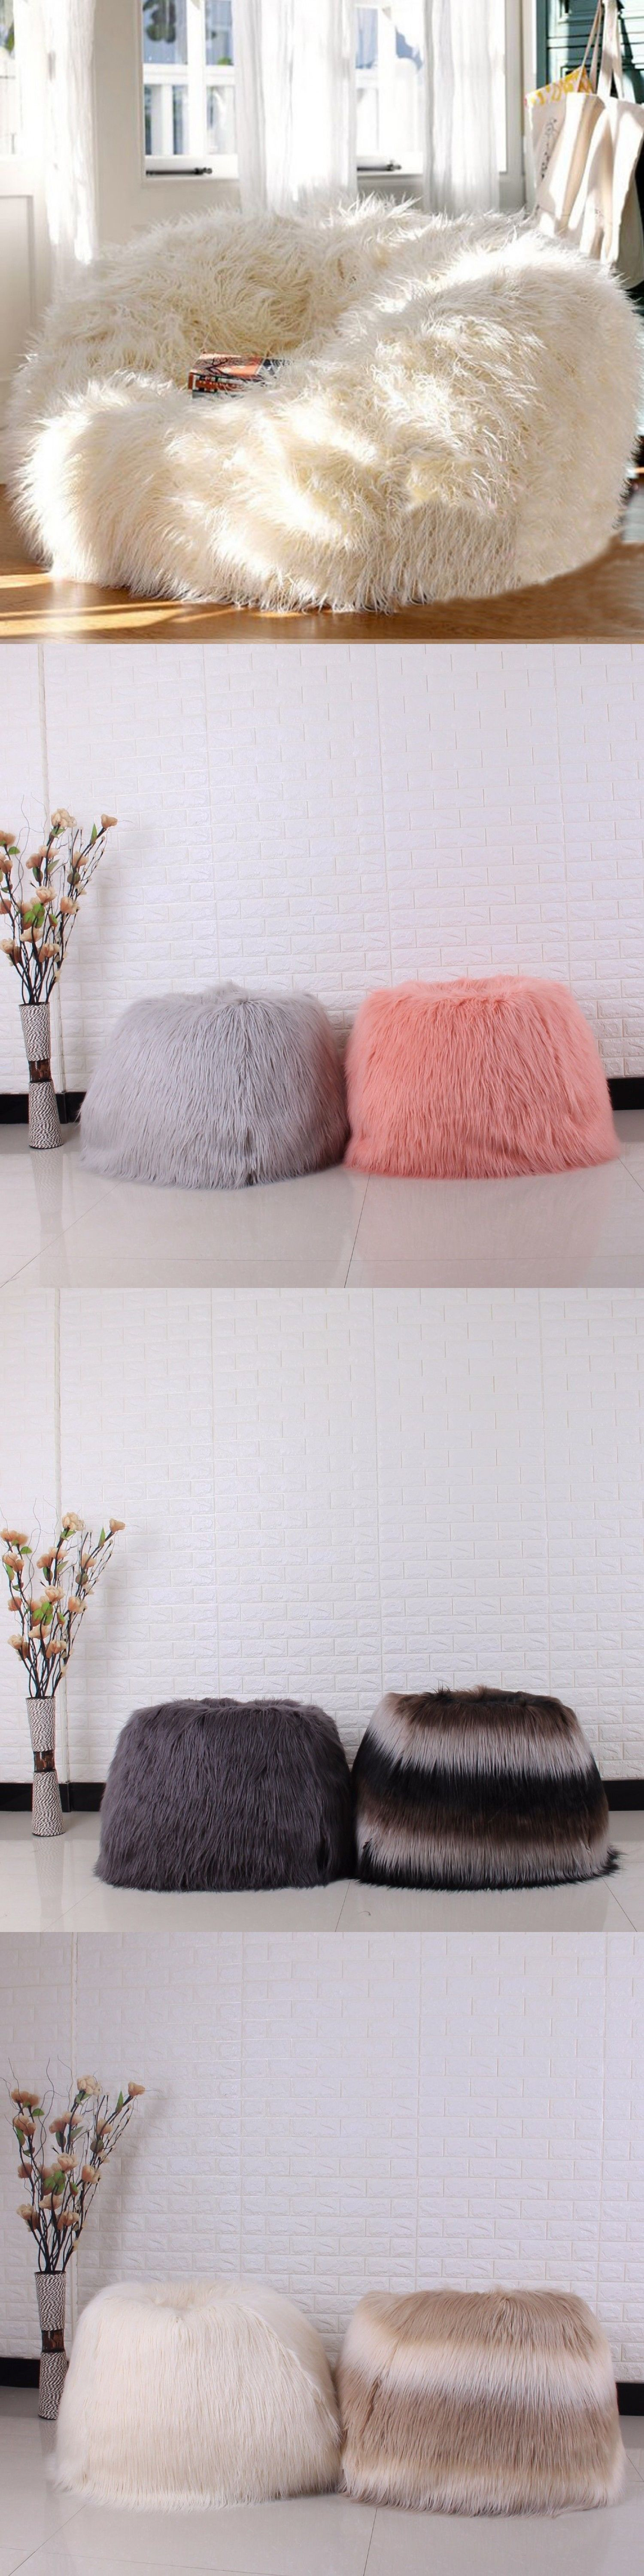 Bean Bags and Inflatables 48319  Furry Bean Bag Cover Lounger Size Sofa  Chair Living Room Beanbags Cover One Seat -  BUY IT NOW ONLY   91.09 on   eBay ... b7cd0d72d4071